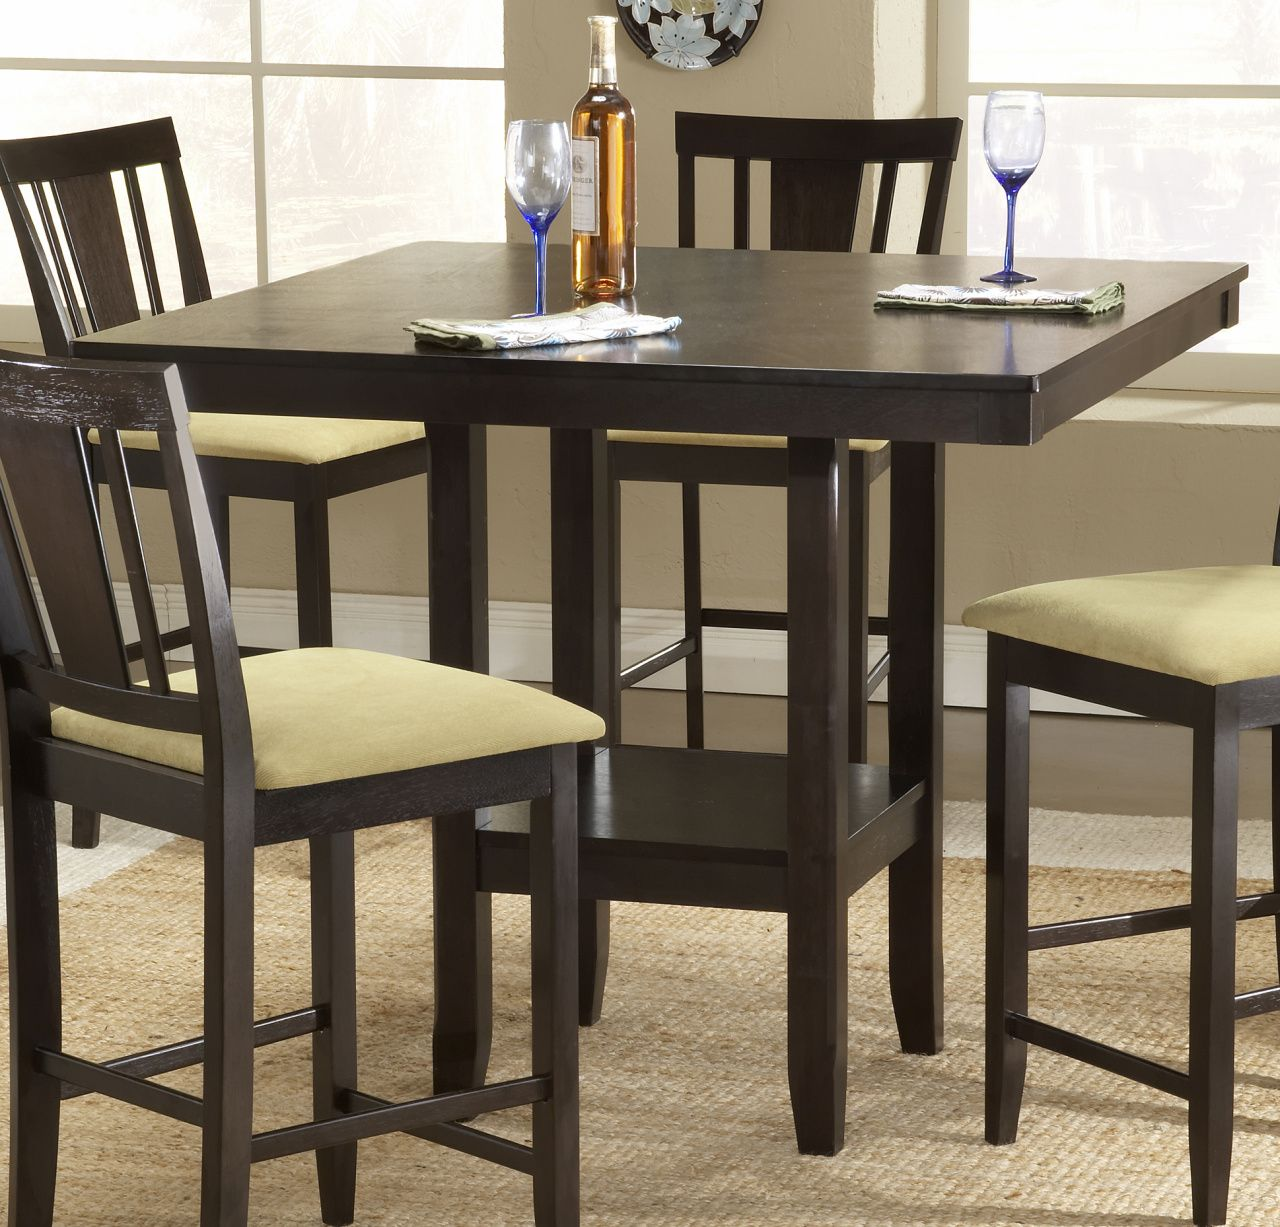 Folding dining table and chair set  High top Dining Table  Custom Home Office Furniture Check more at